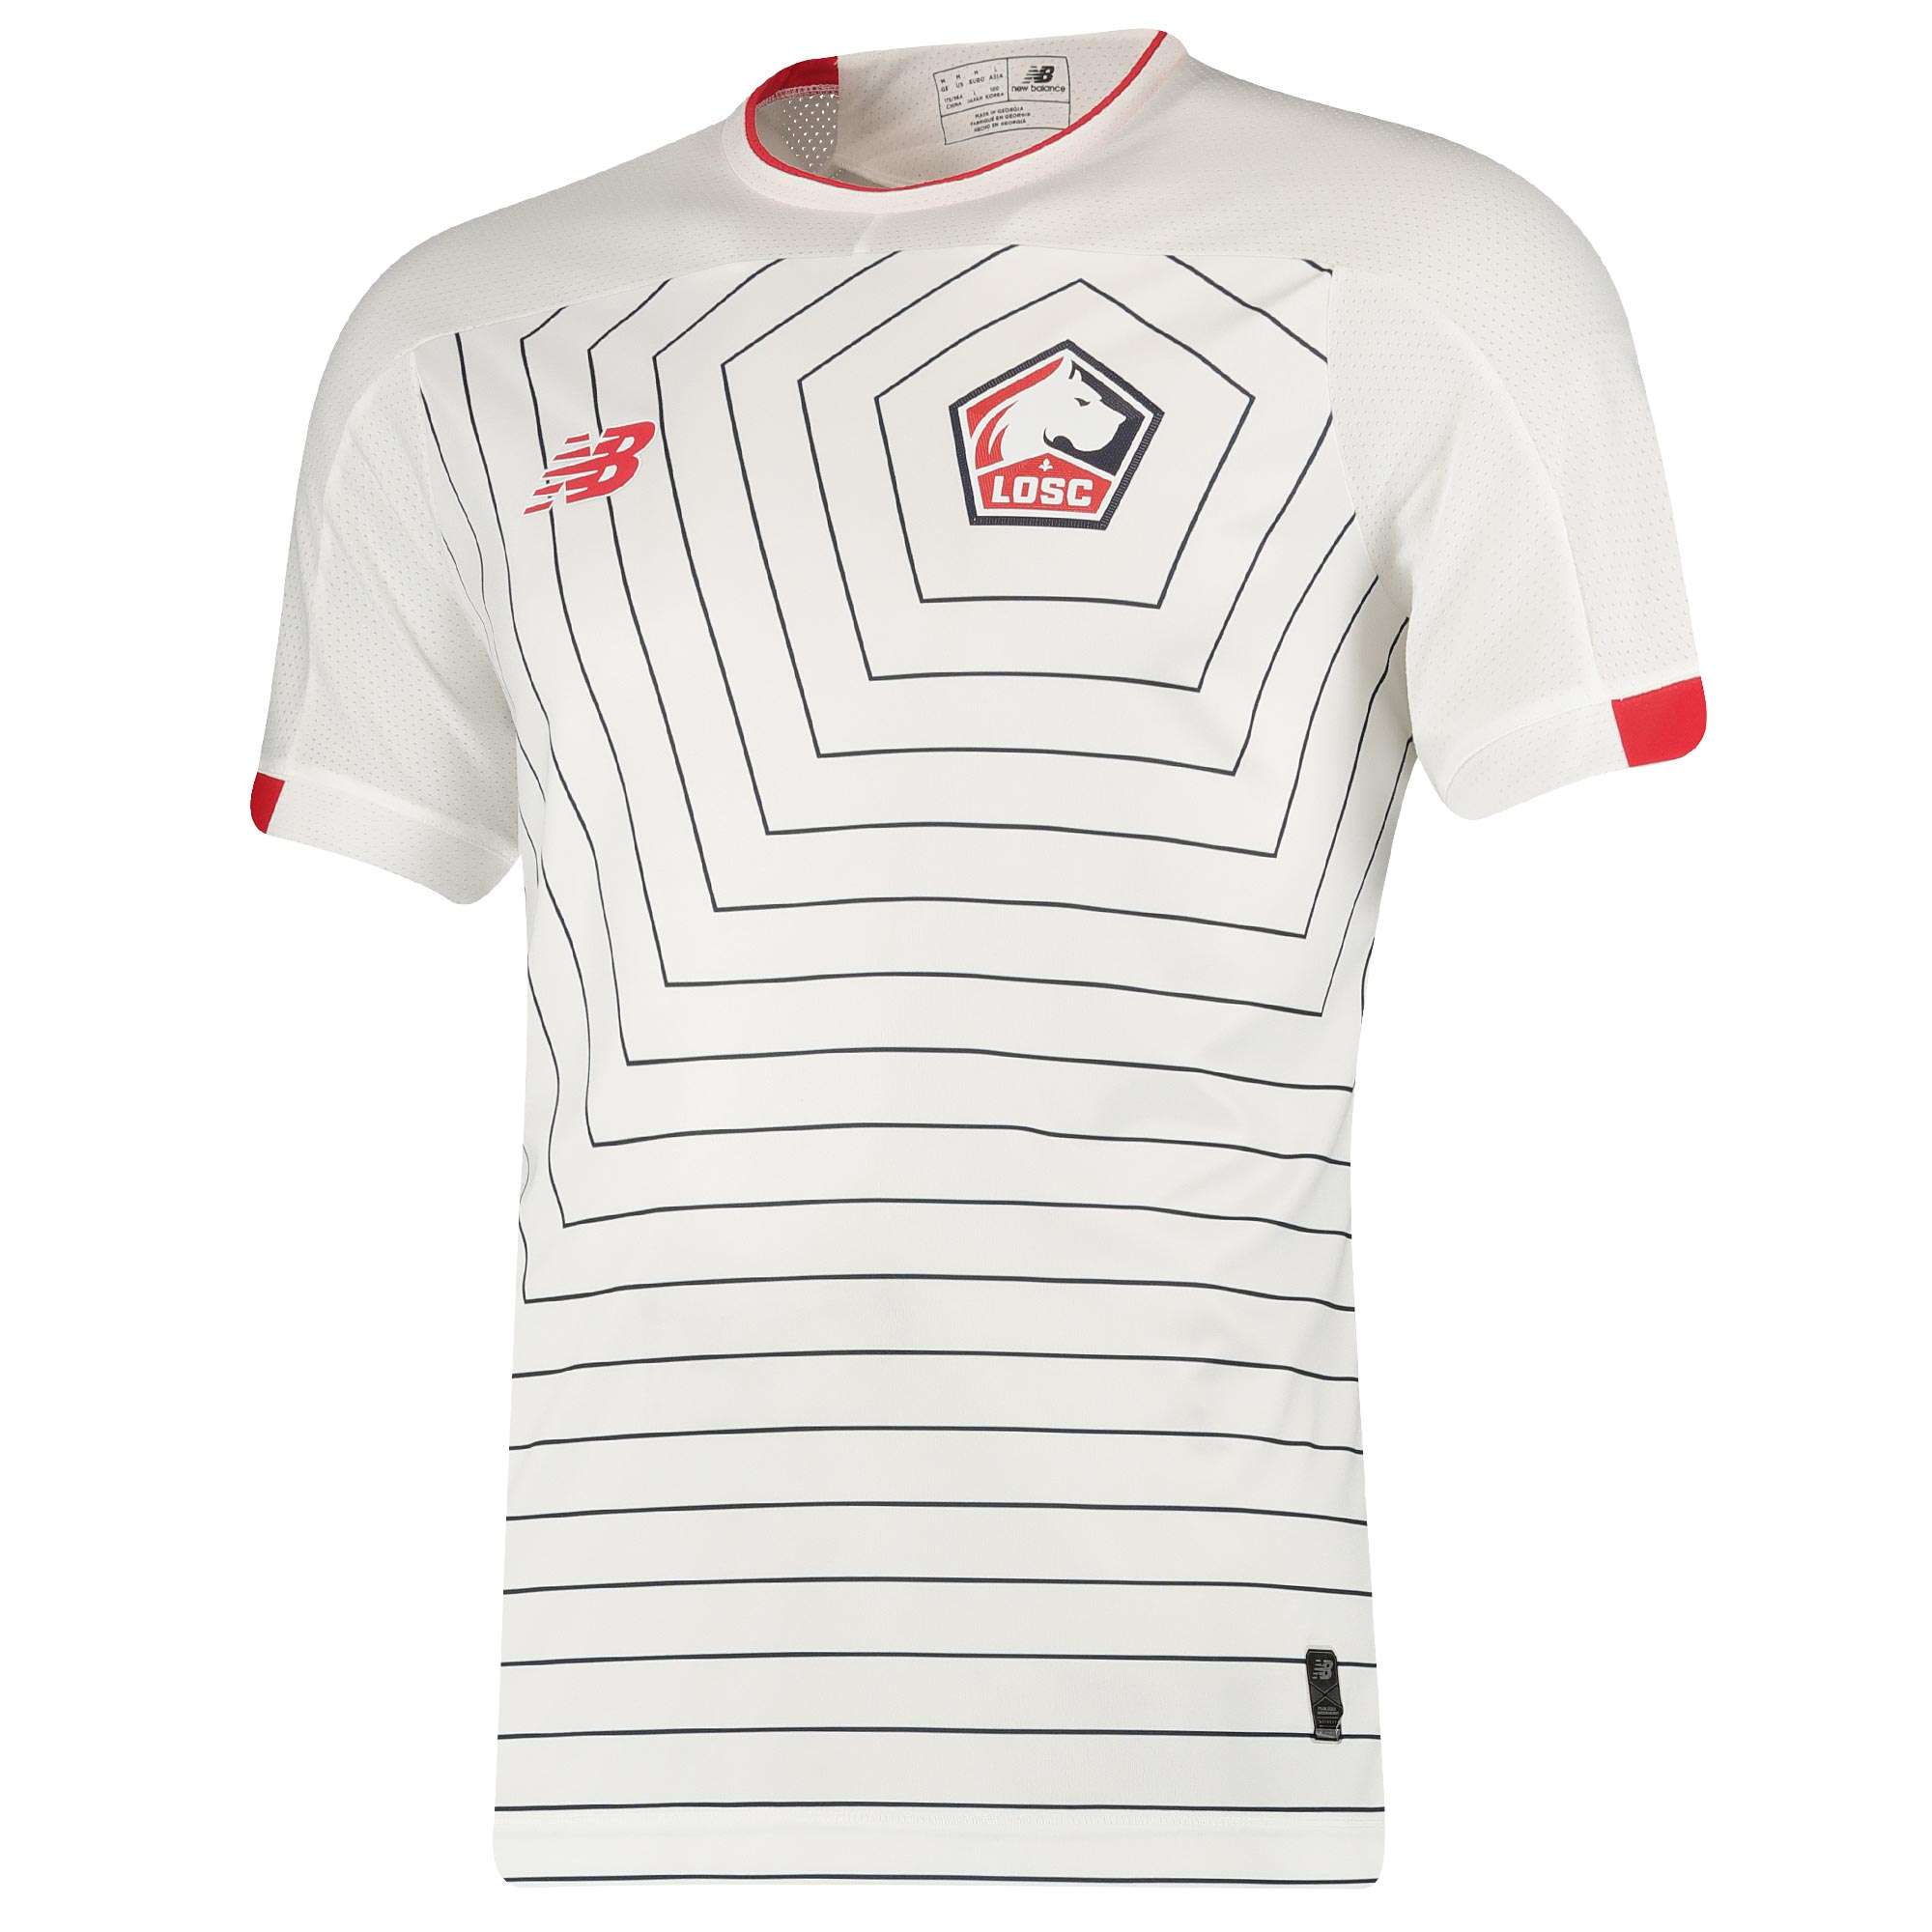 Lille Terceira camisa